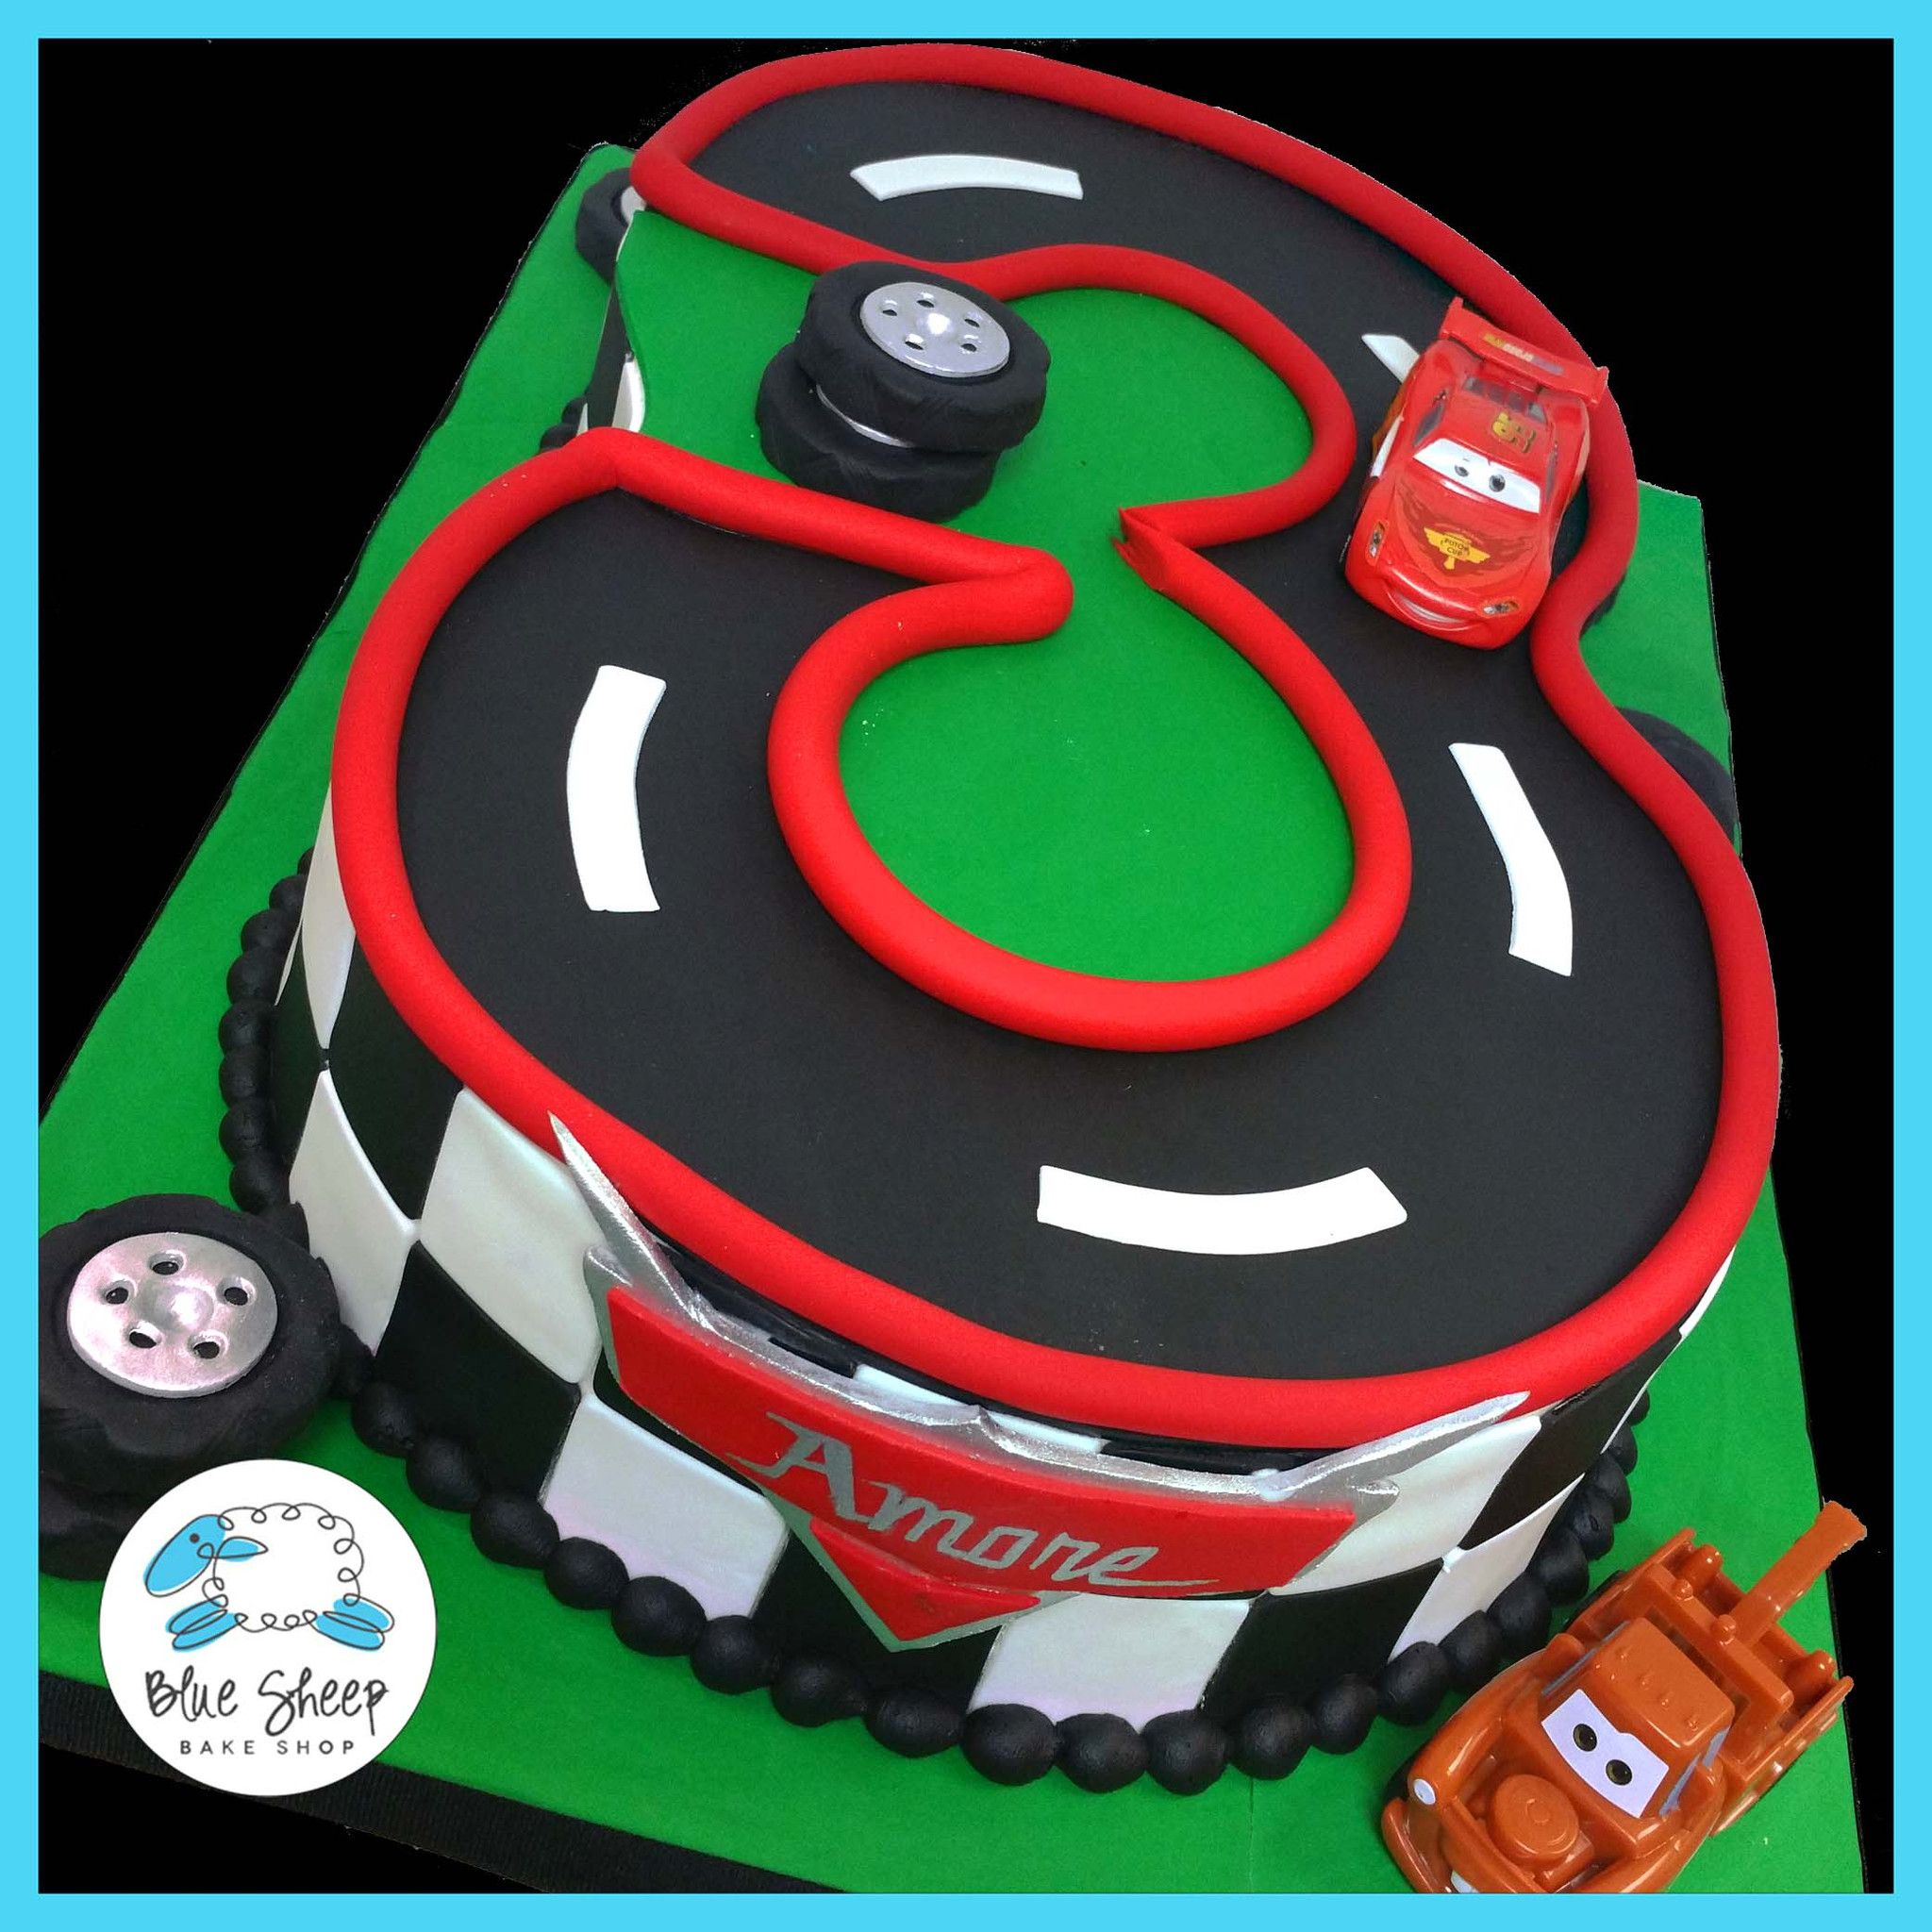 Tremendous 3 Carved Cars Themed Cake Lightning Mcqueen Birthday Cake Cars Personalised Birthday Cards Paralily Jamesorg